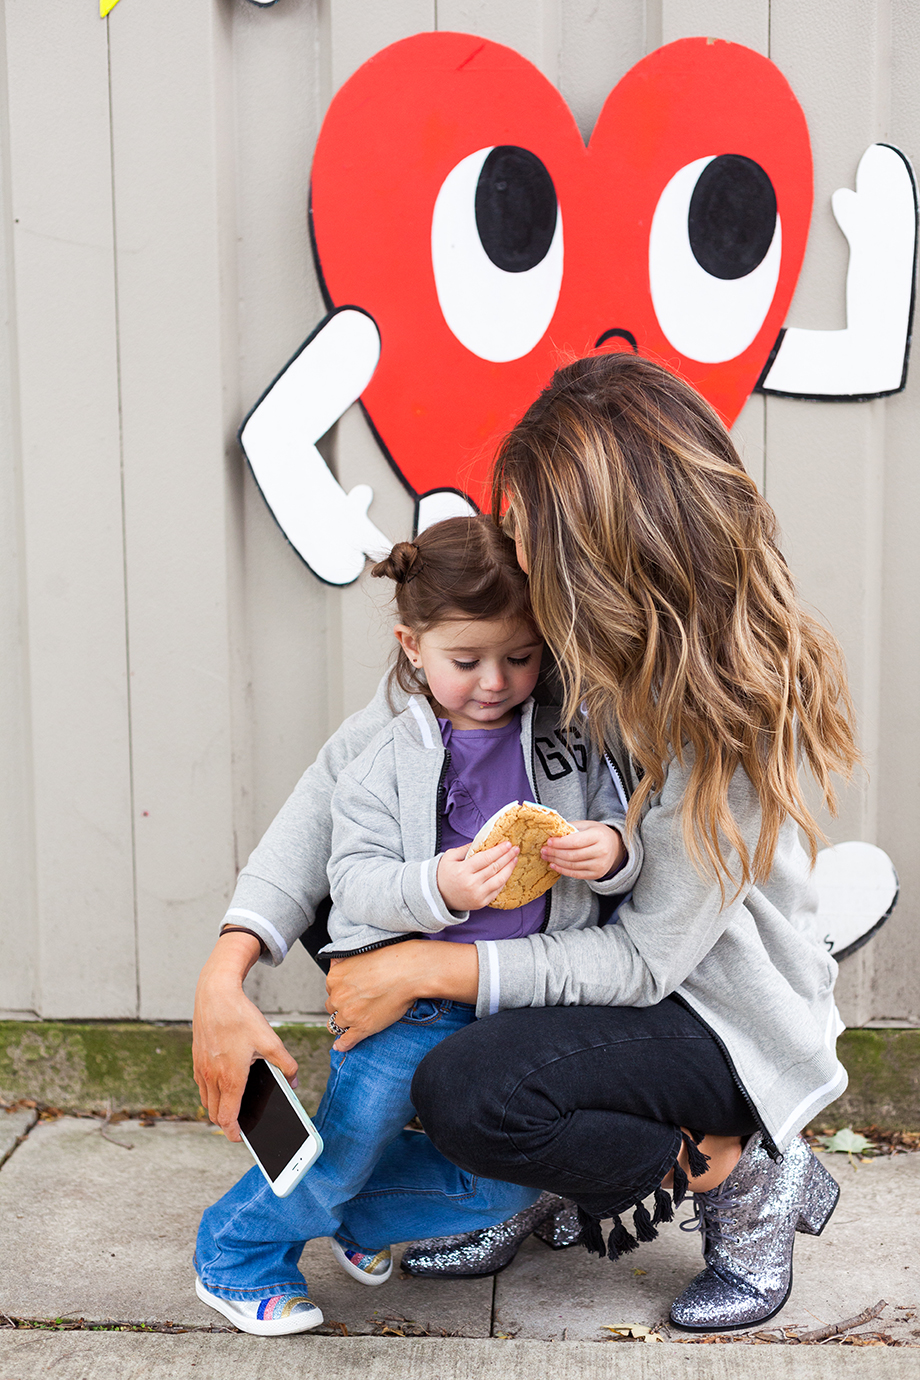 A mother and daughter wearing matching grey best friend varsity jackets in a Chicago street style snap.